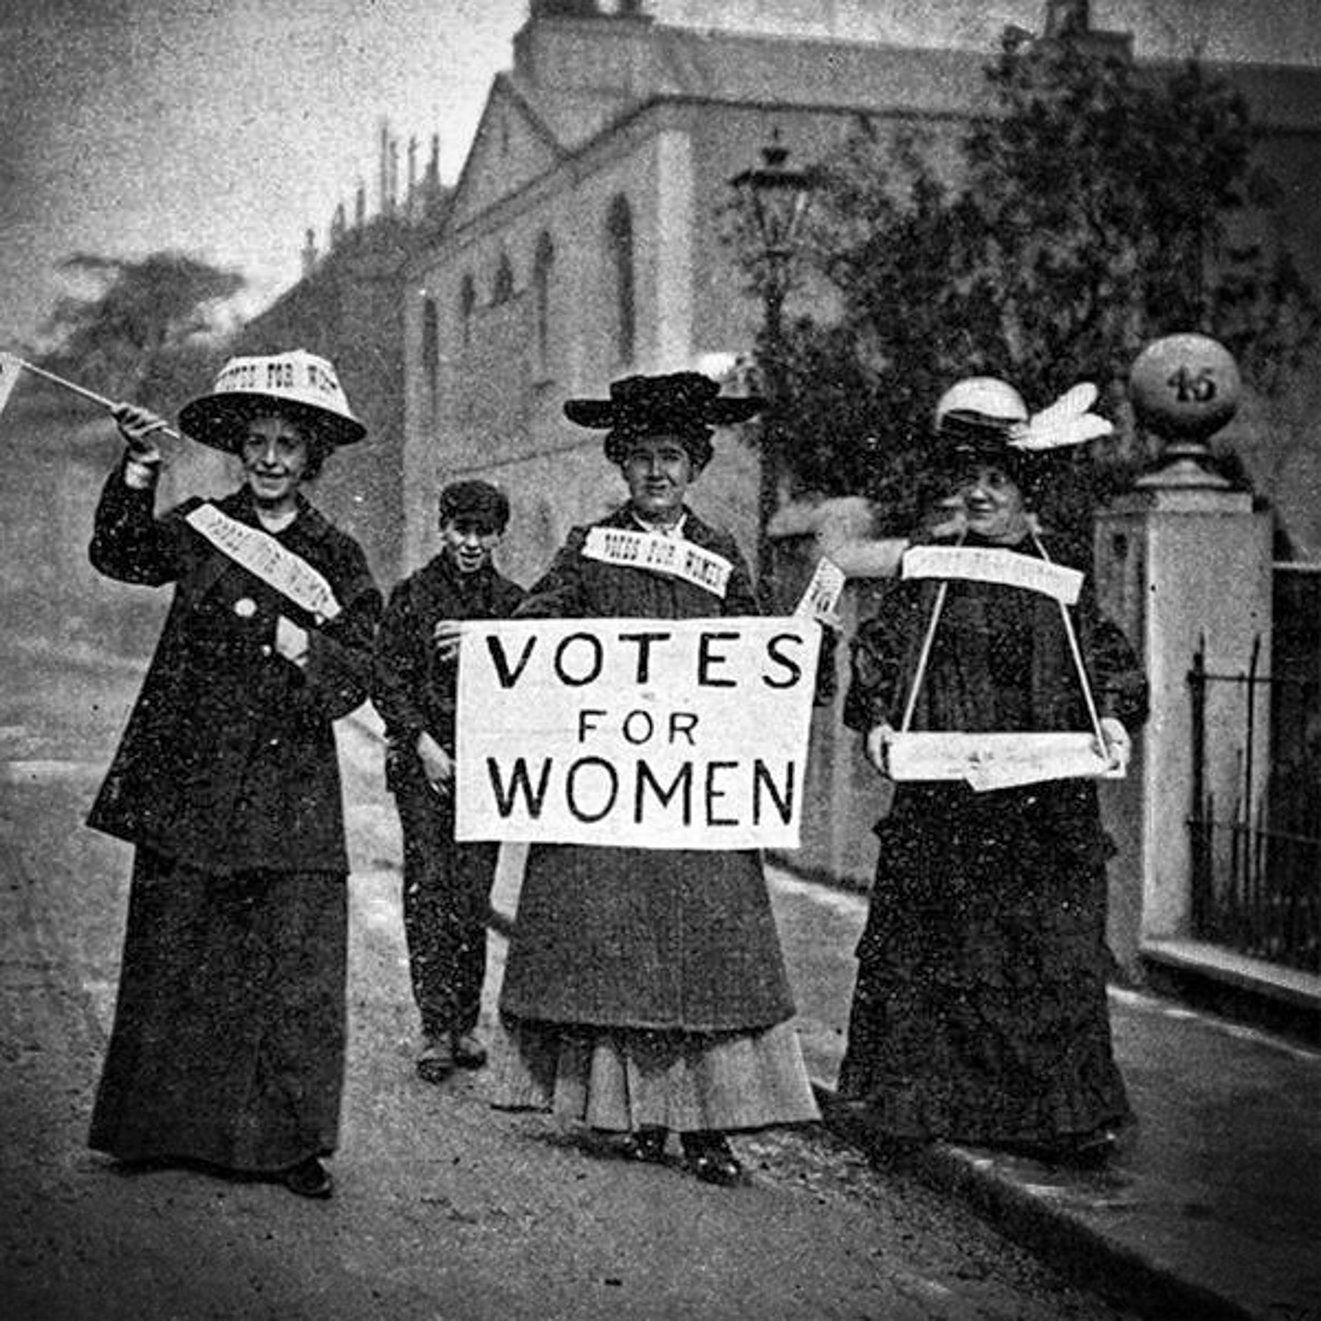 Suffragette Black and White Demonstration